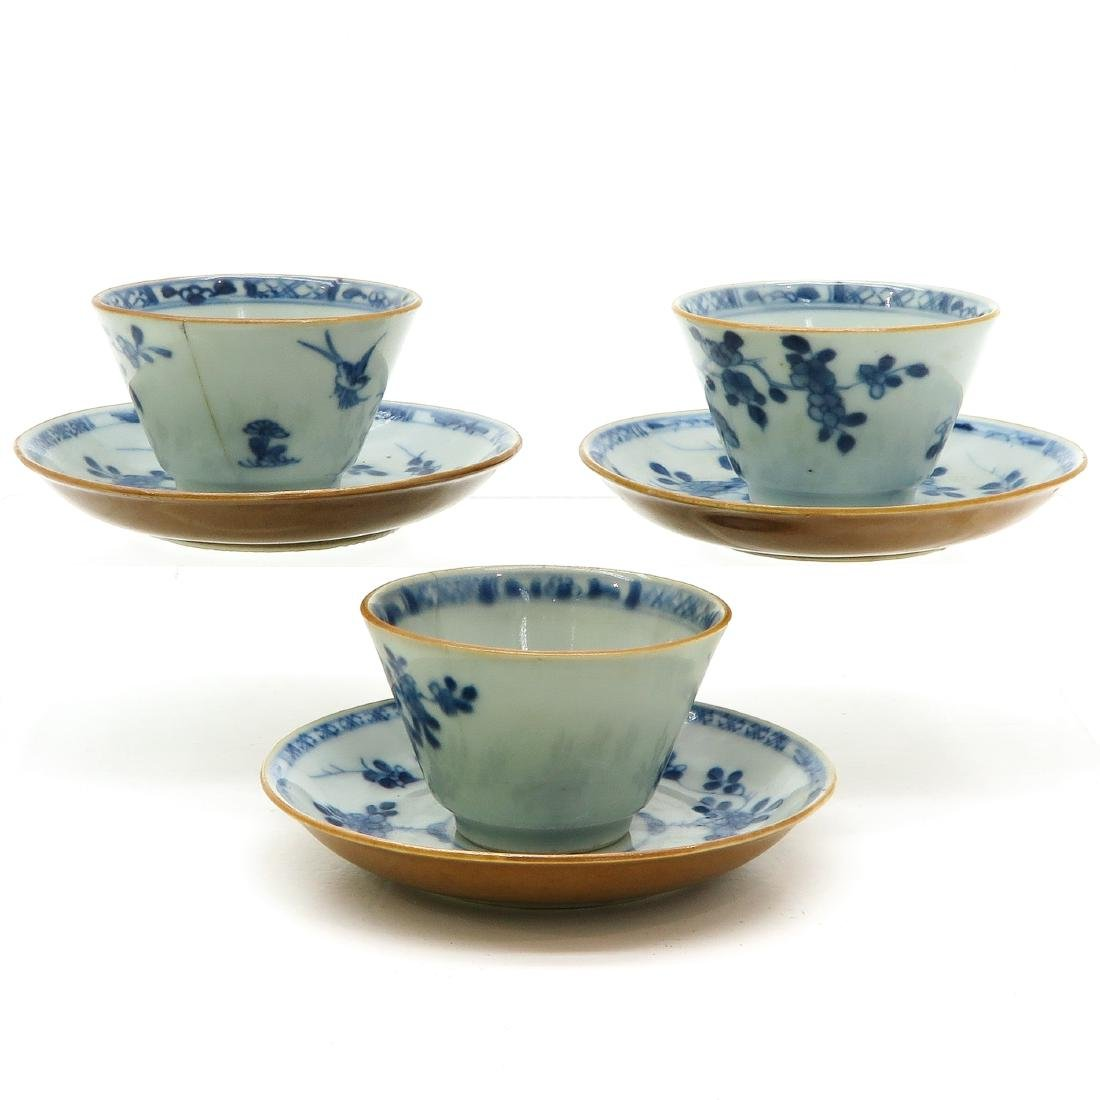 Lot of 3 Cups and Saucers - 2